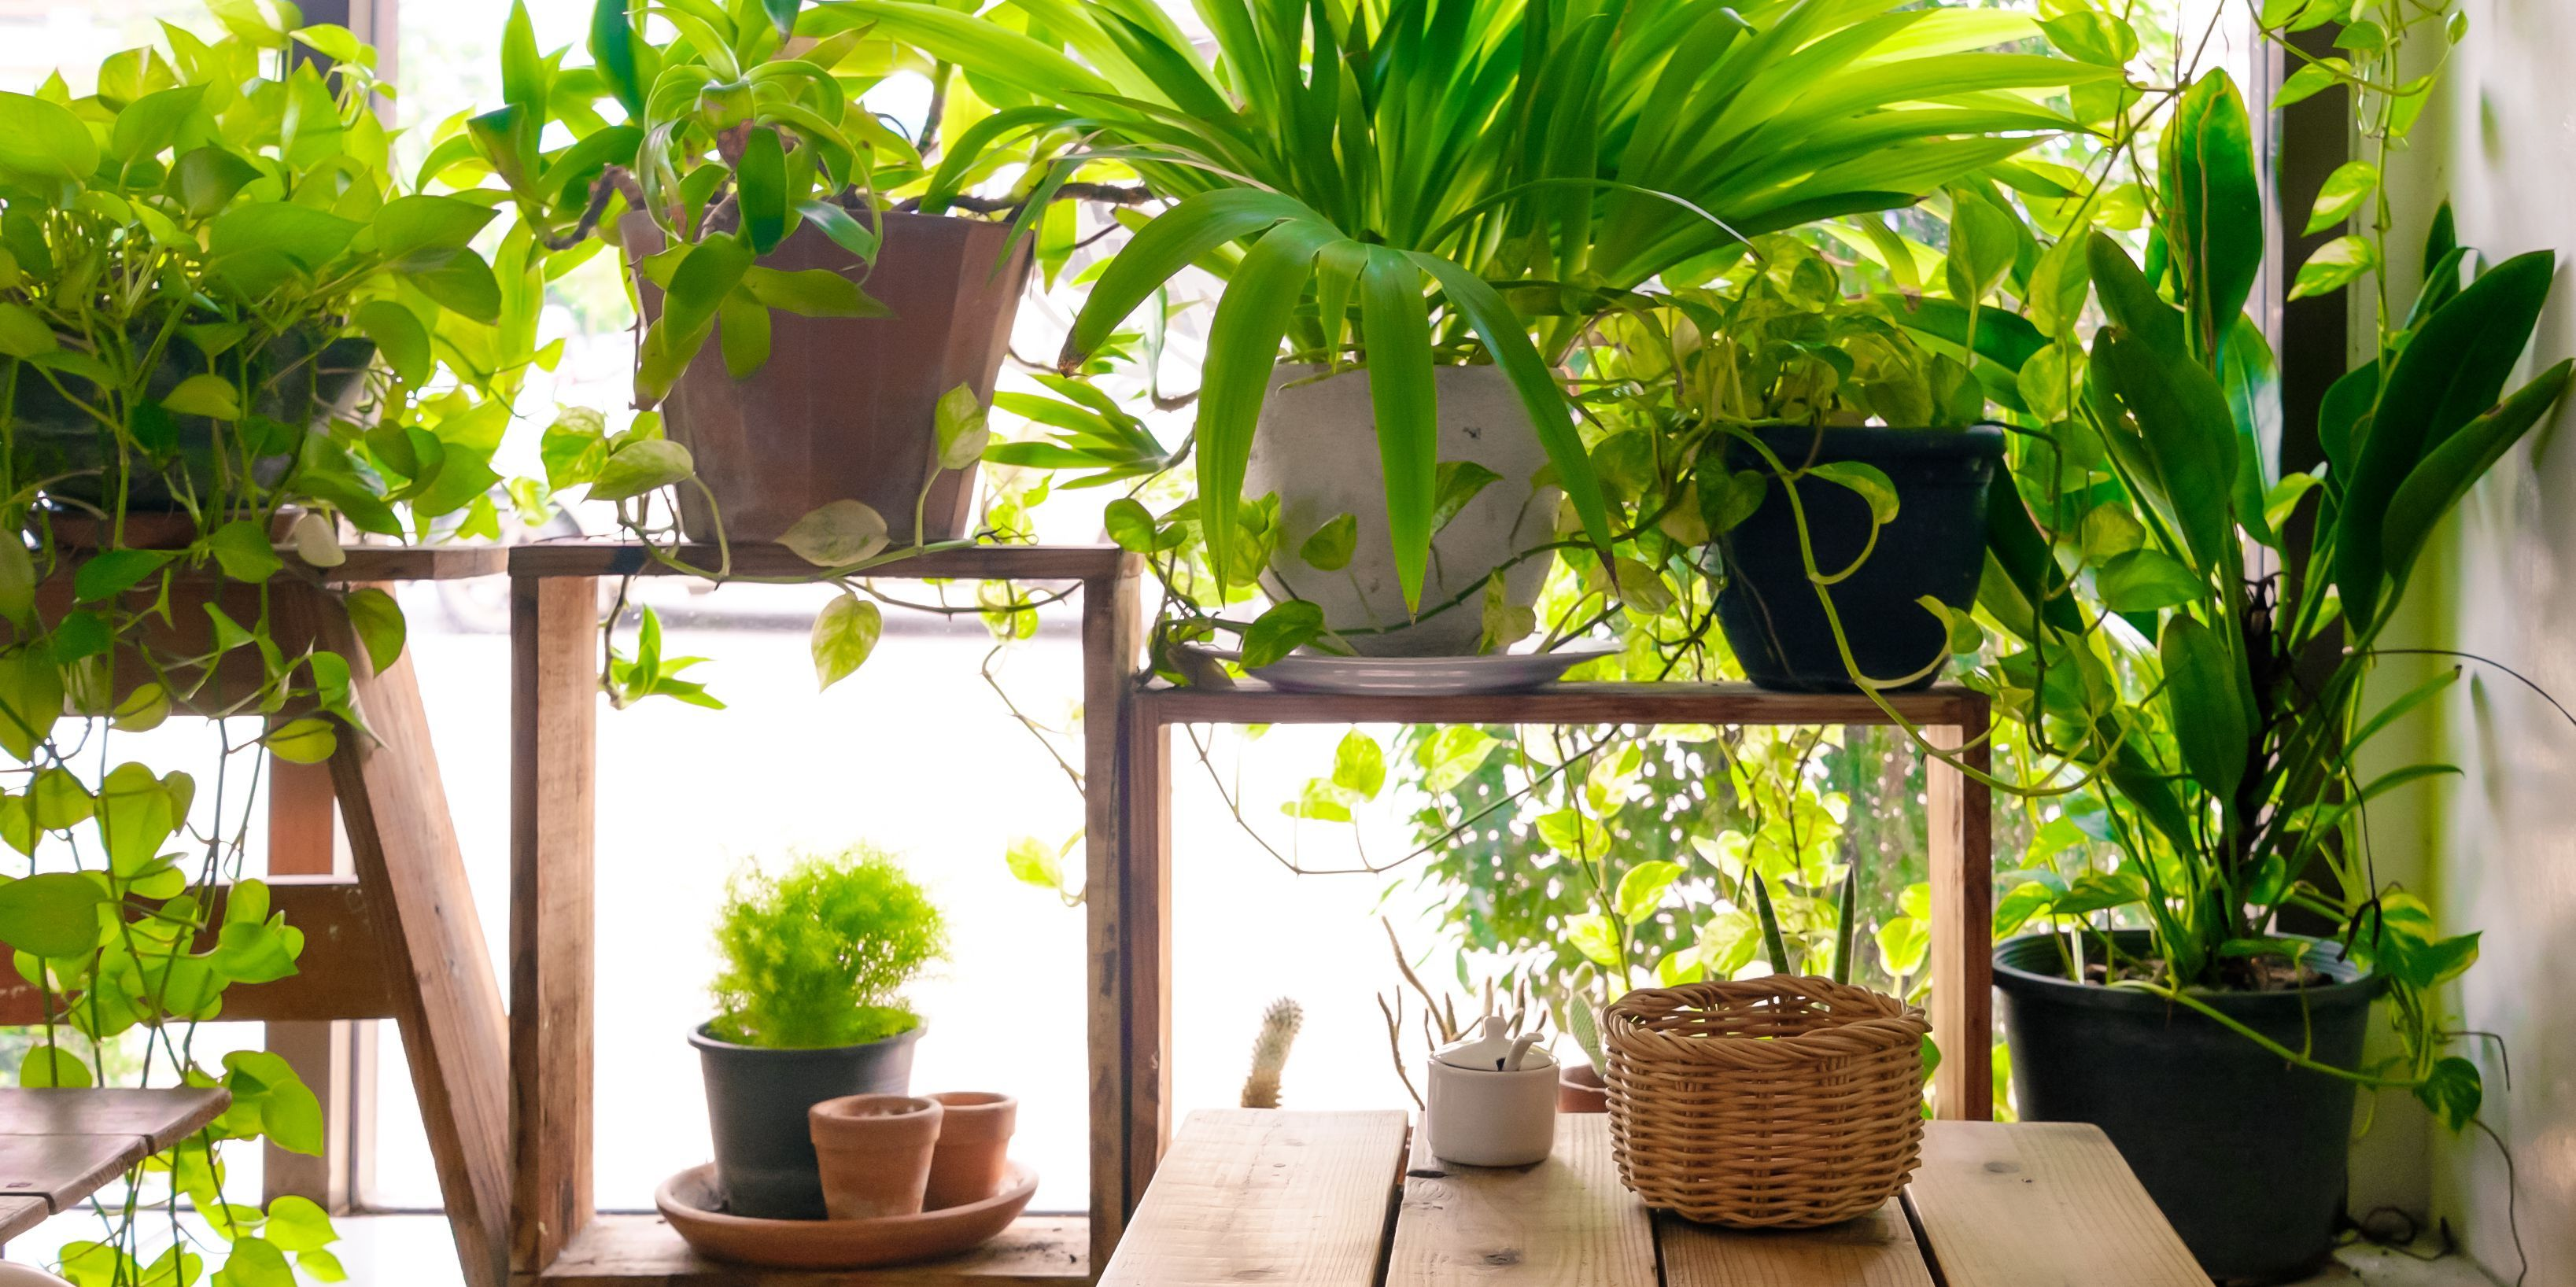 7 Indoor Plants That Can Actually Purify The Air In